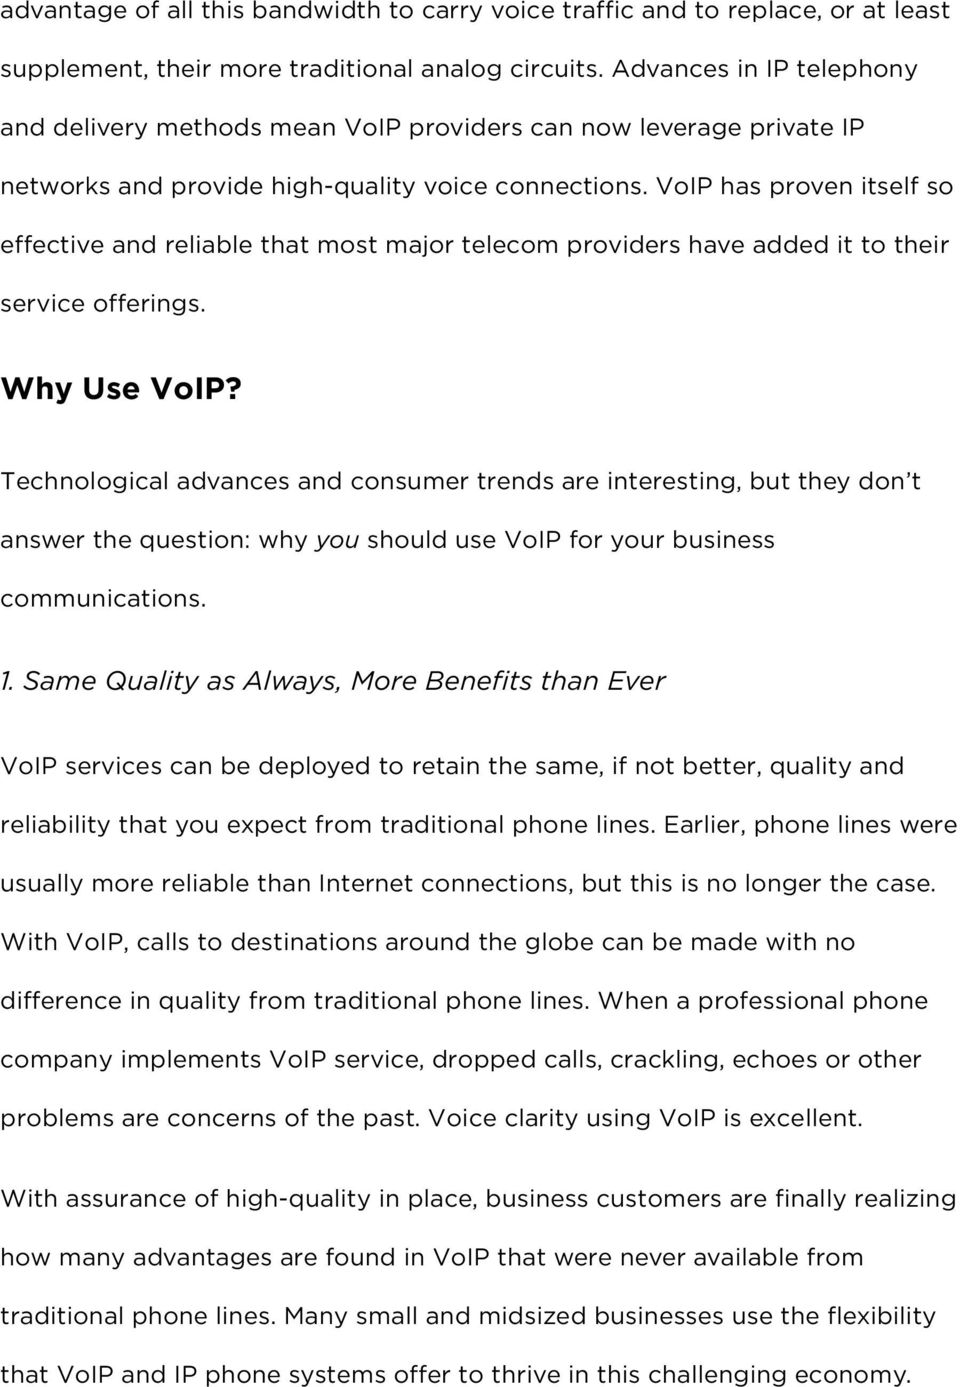 VoIP has proven itself so effective and reliable that most major telecom providers have added it to their service offerings. Why Use VoIP?